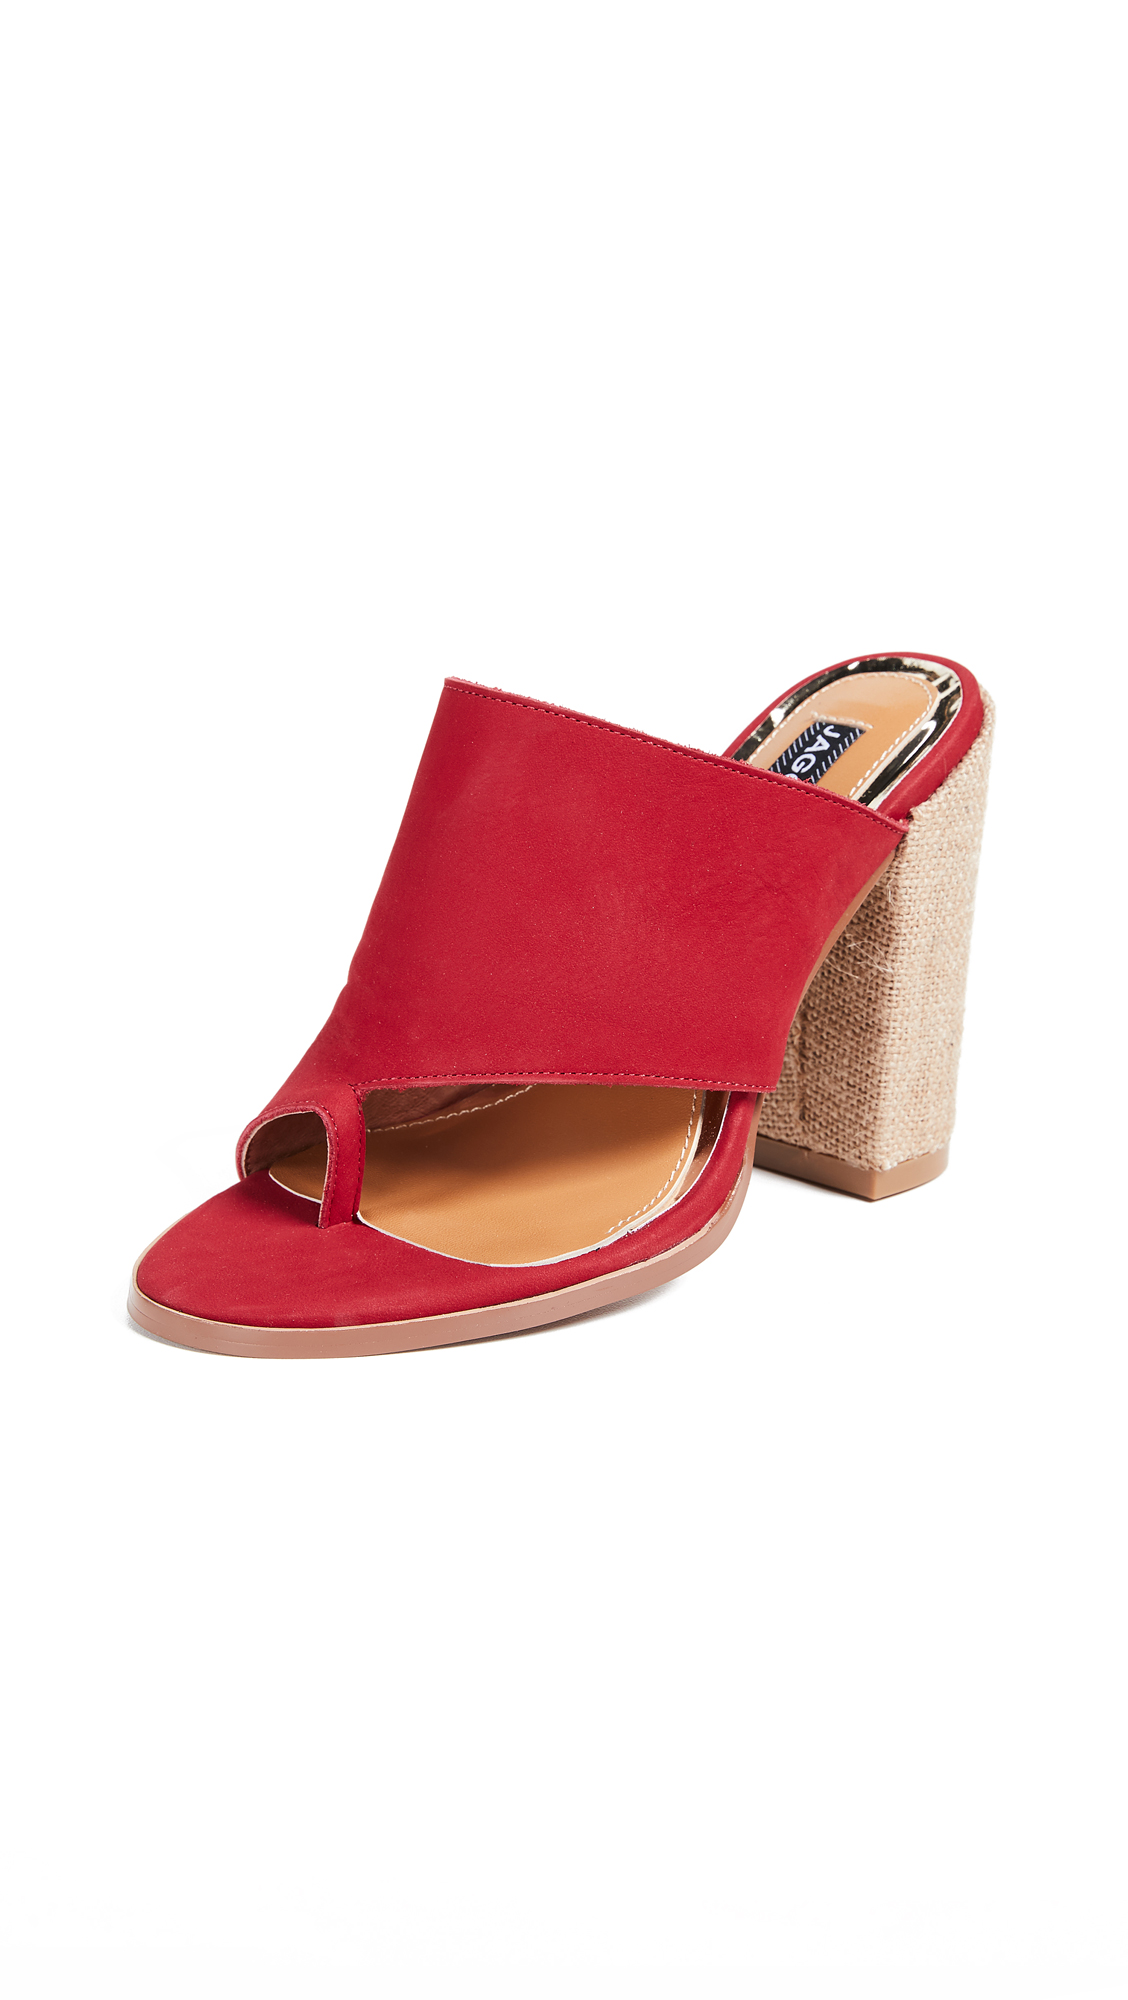 JAGGAR Juxtaposed Toe Ring Sandals - Red